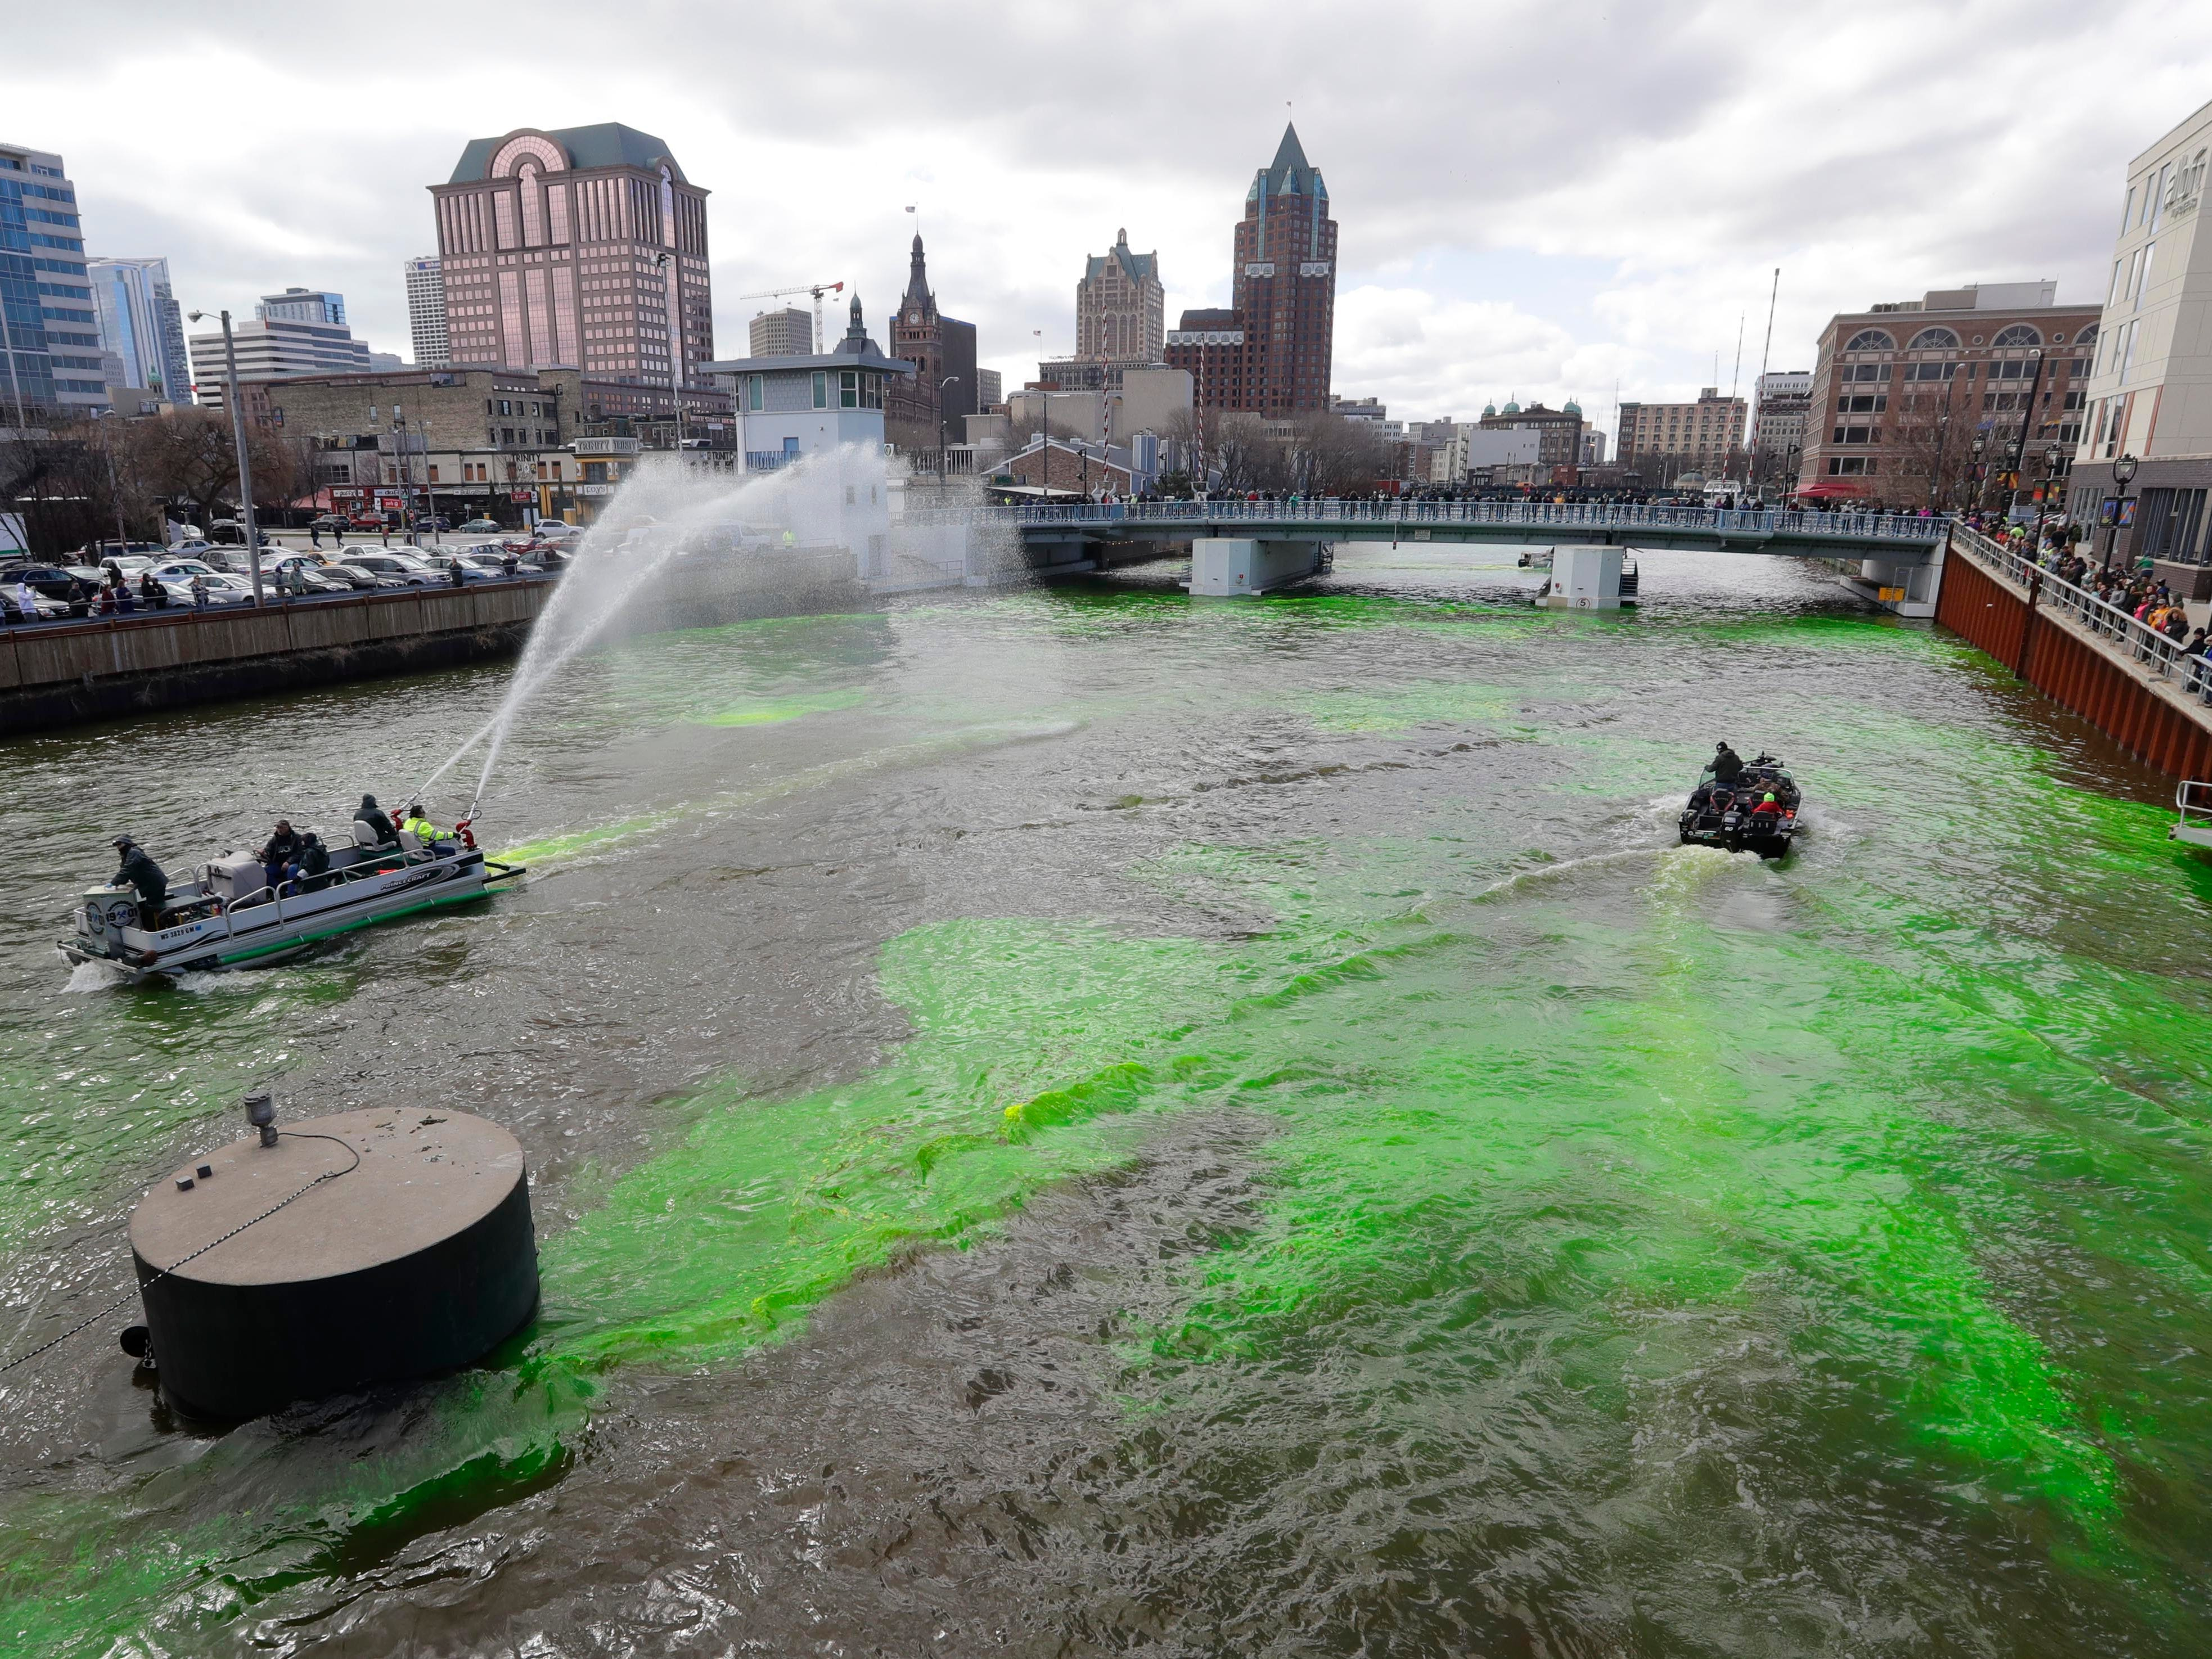 Excitement over the Milwaukee Bucks heading into the NBA playoffs this weekend is enough to turn the Milwaukee River a bright shade of green. Milwaukee Bucks president Peter Feigin and Milwaukee Mayor Tom Barrett watch as boats drop harmless green powder into the Milwaukee River near McKinley to celebrate the Milwaukee Bucks playoffs which begin Sunday.